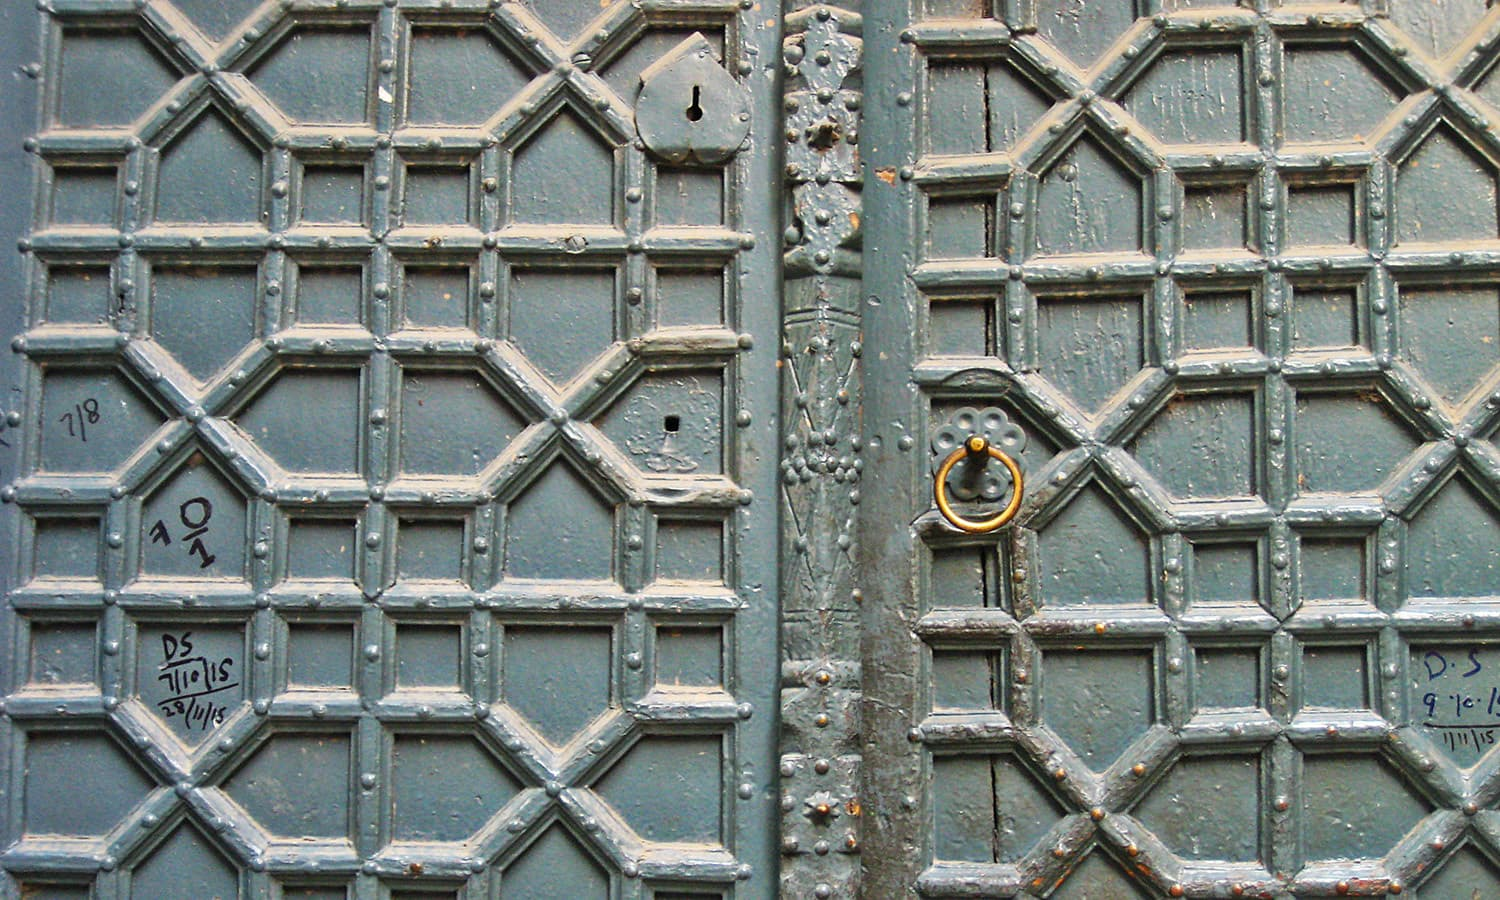 Detailed carvings of an old, wooden door.